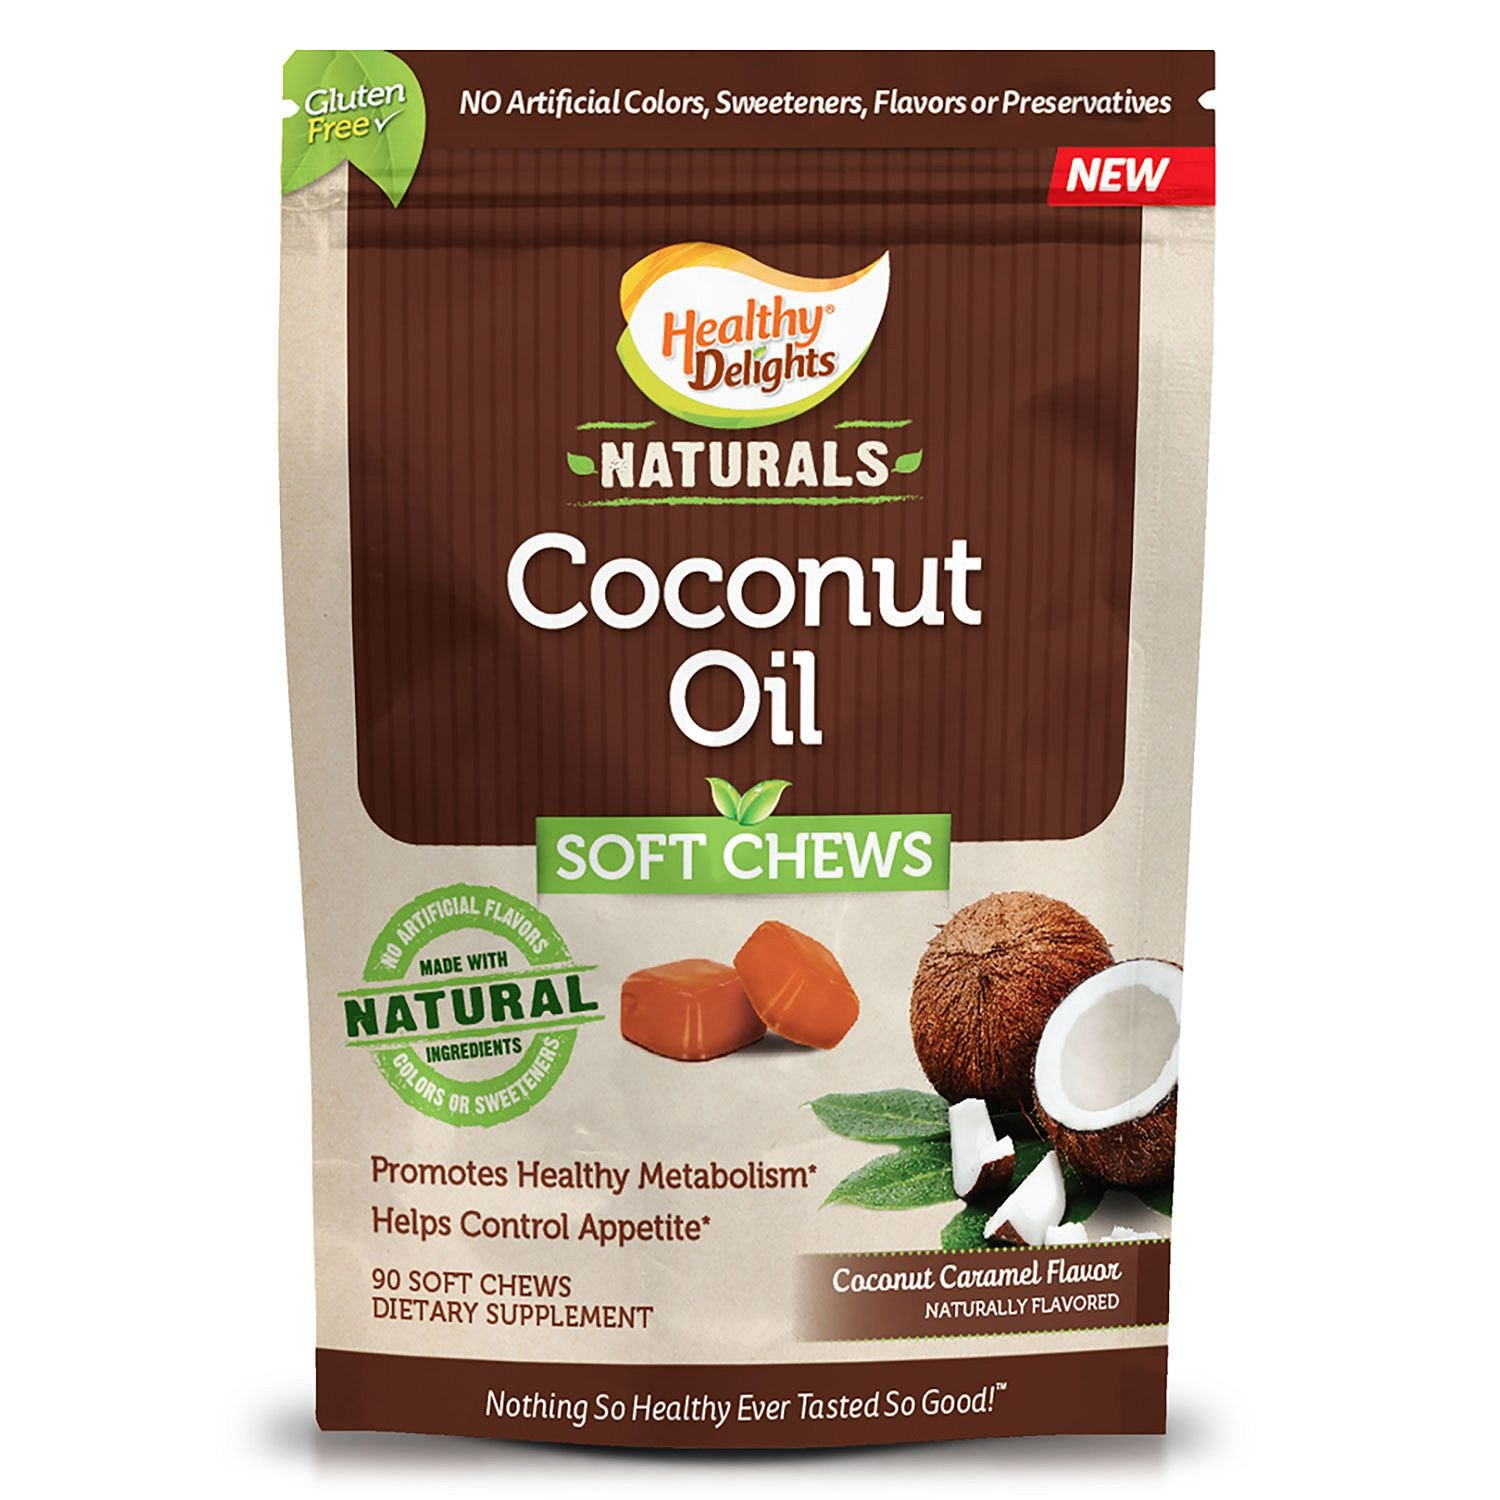 Healthy Delights Natural Coconut Oil Chews, Family Pack 90 Soft Chews by Healthy Delights